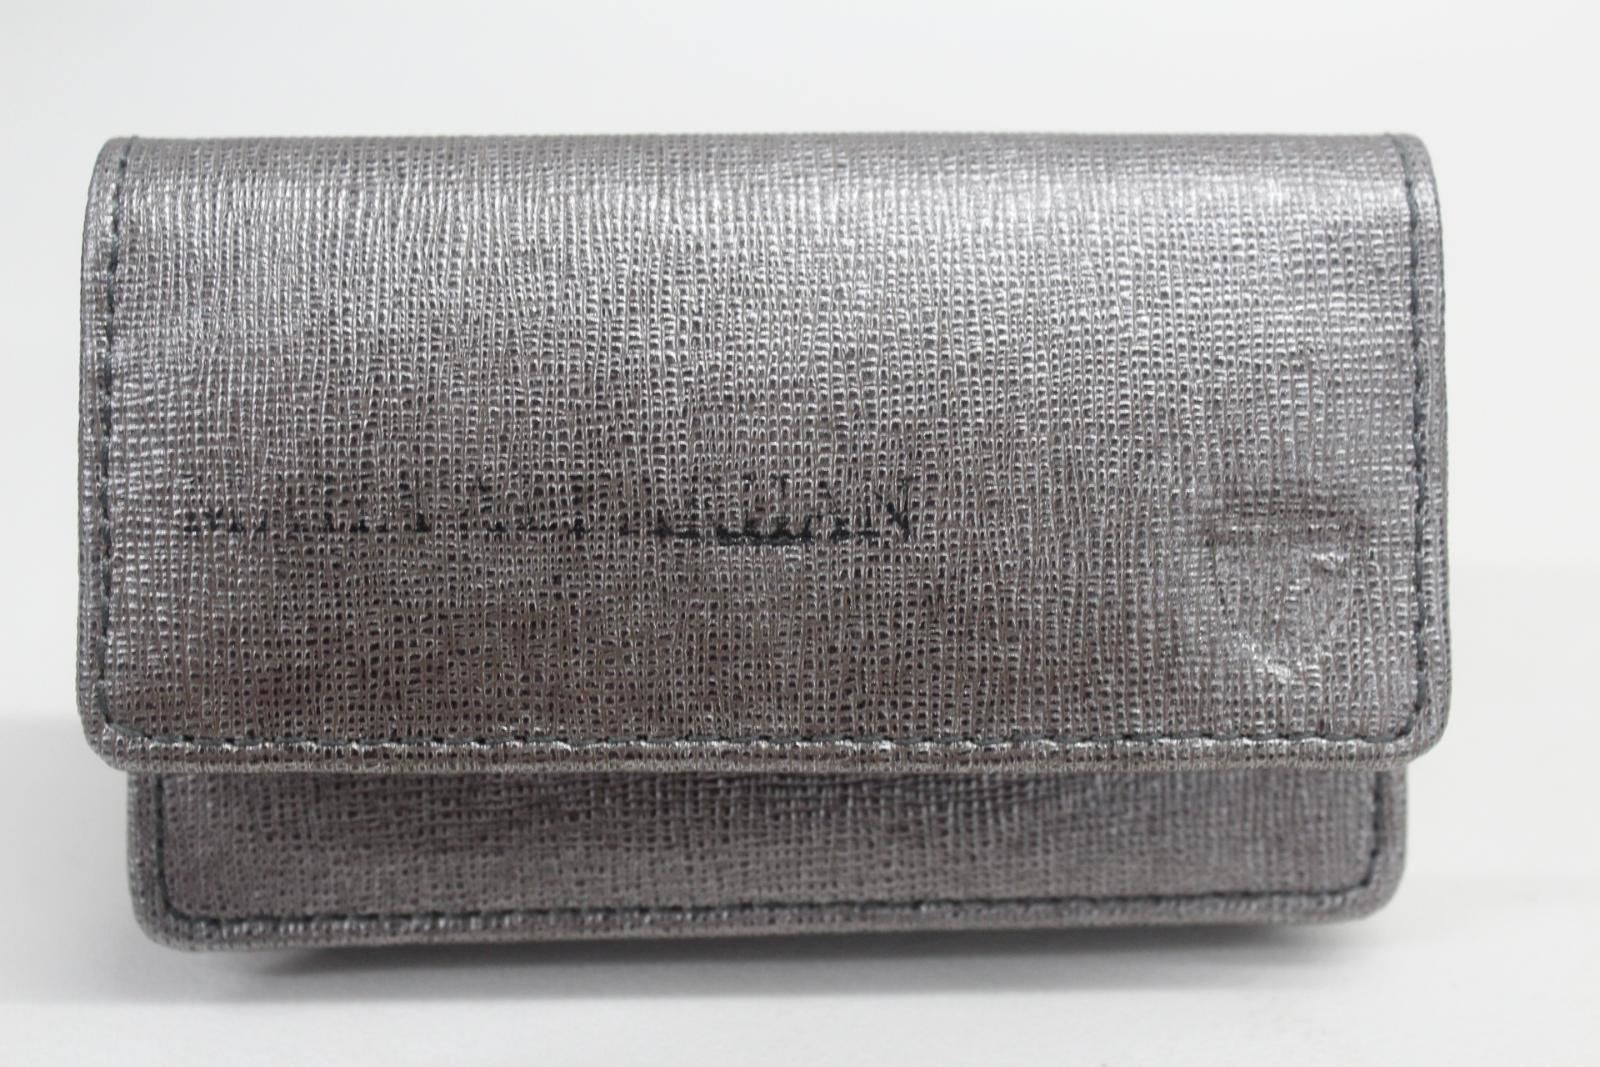 ASPINAL-OF-LONDON-Business-Card-Case-Gunmetal-Saffiano-Initials-Defect-NEW